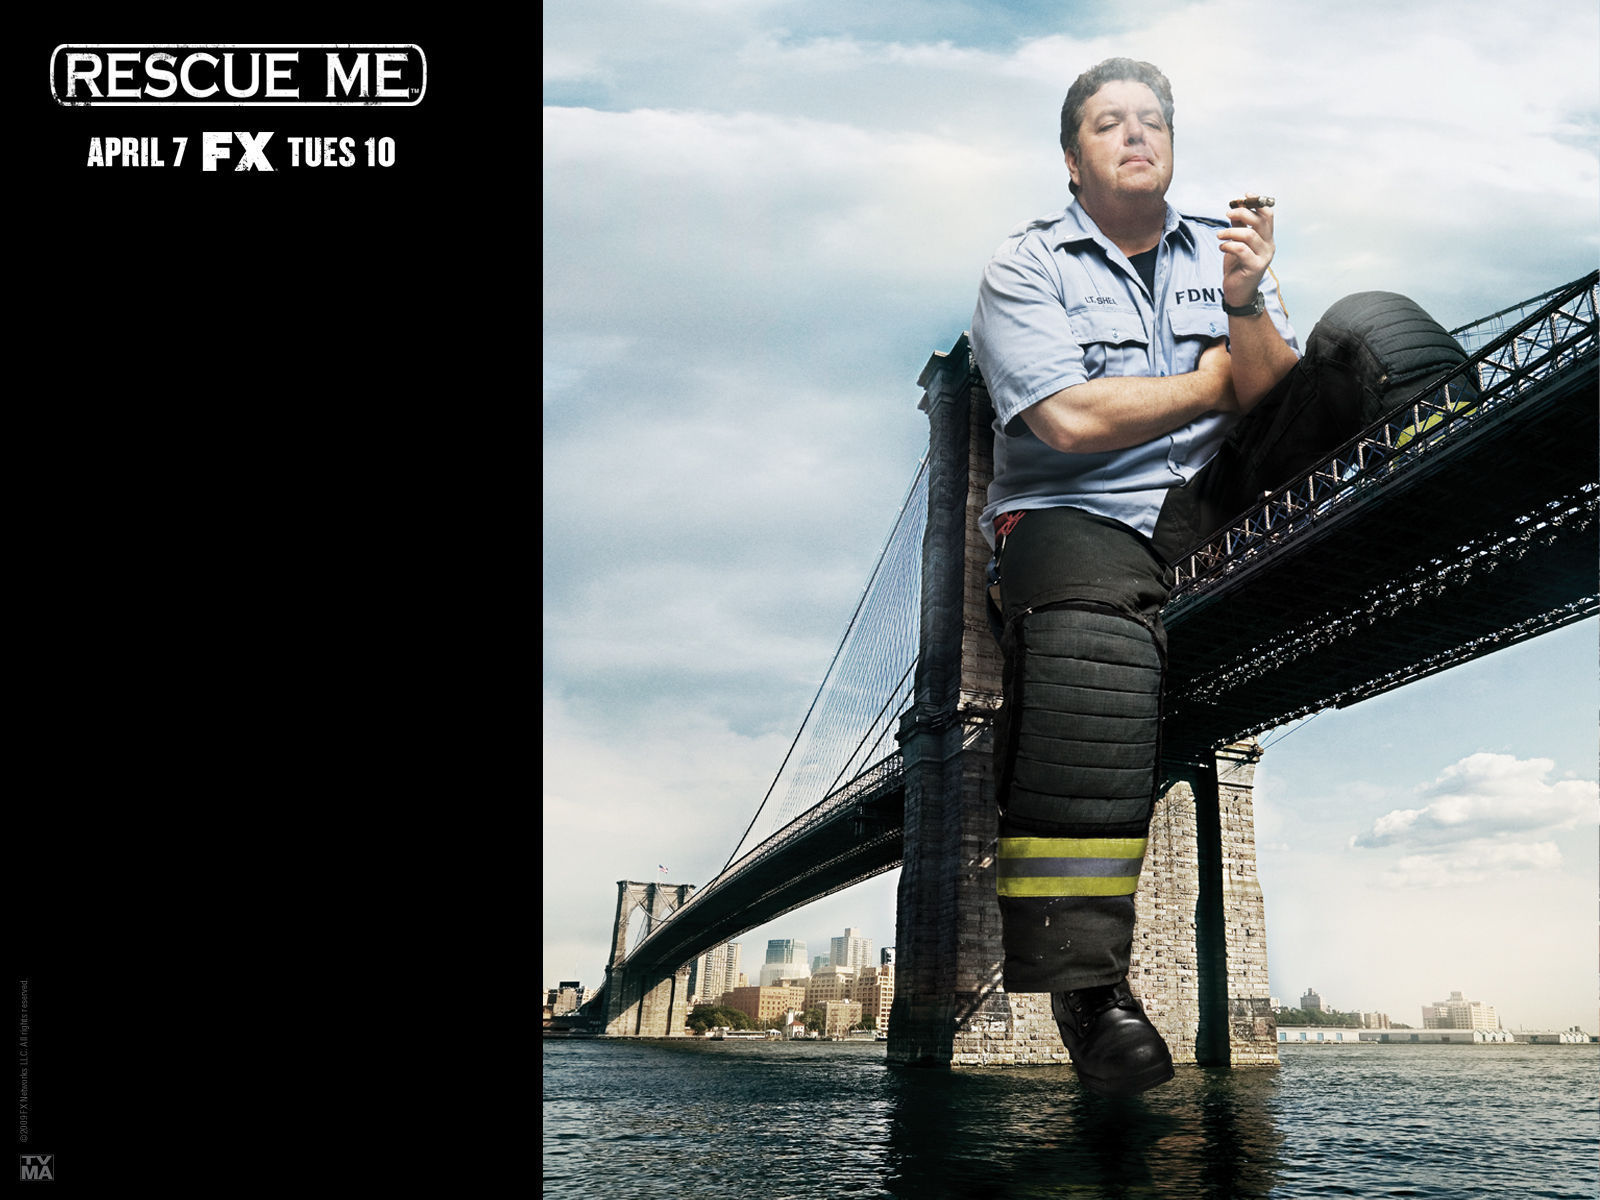 Rescue Me - Rescue Me Wallpaper (5404410) - Fanpop